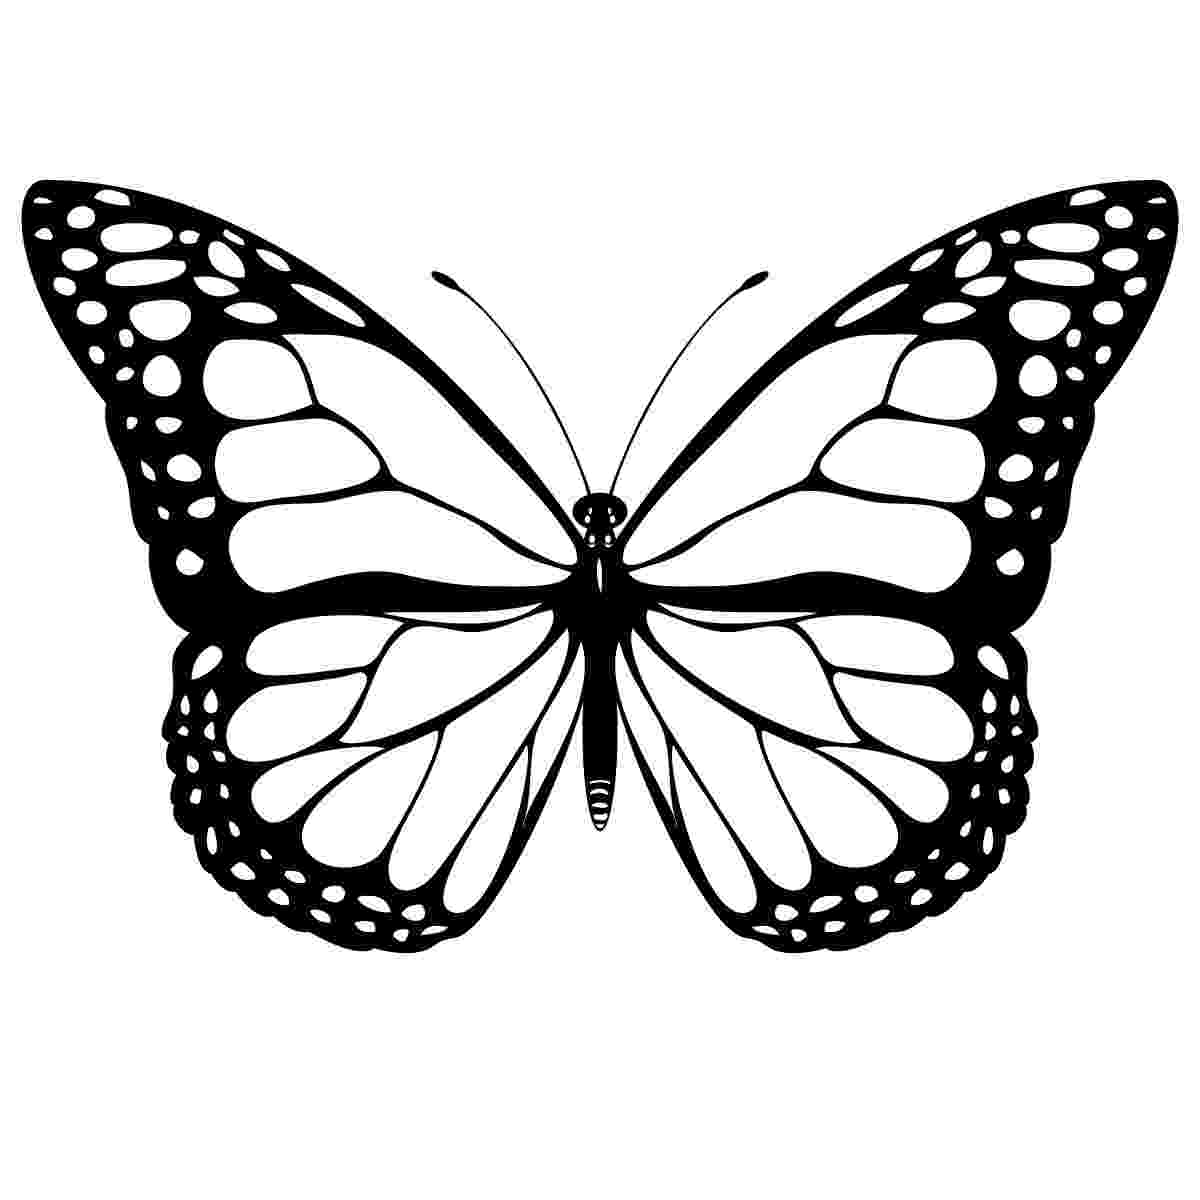 printable butterfly coloring page free printable butterfly coloring pages for kids page butterfly coloring printable